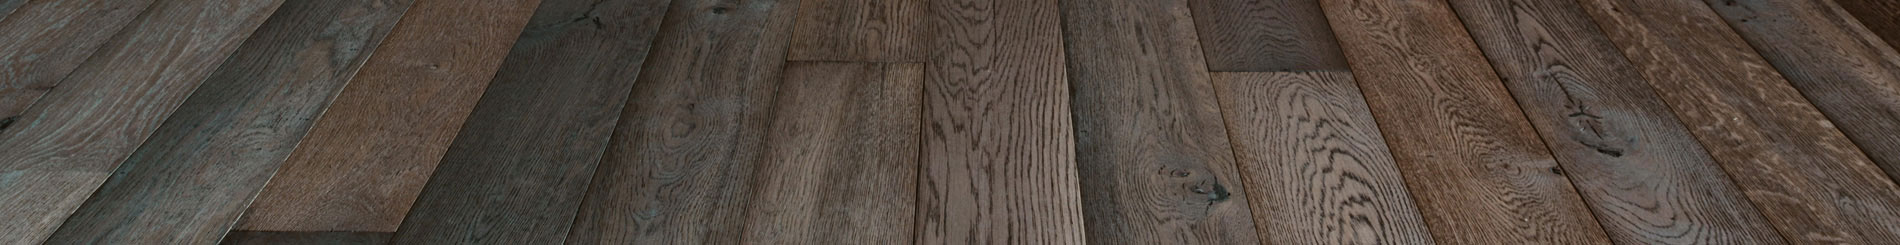 Specials pine floors and hardwood flooring for Hardwood flooring deals